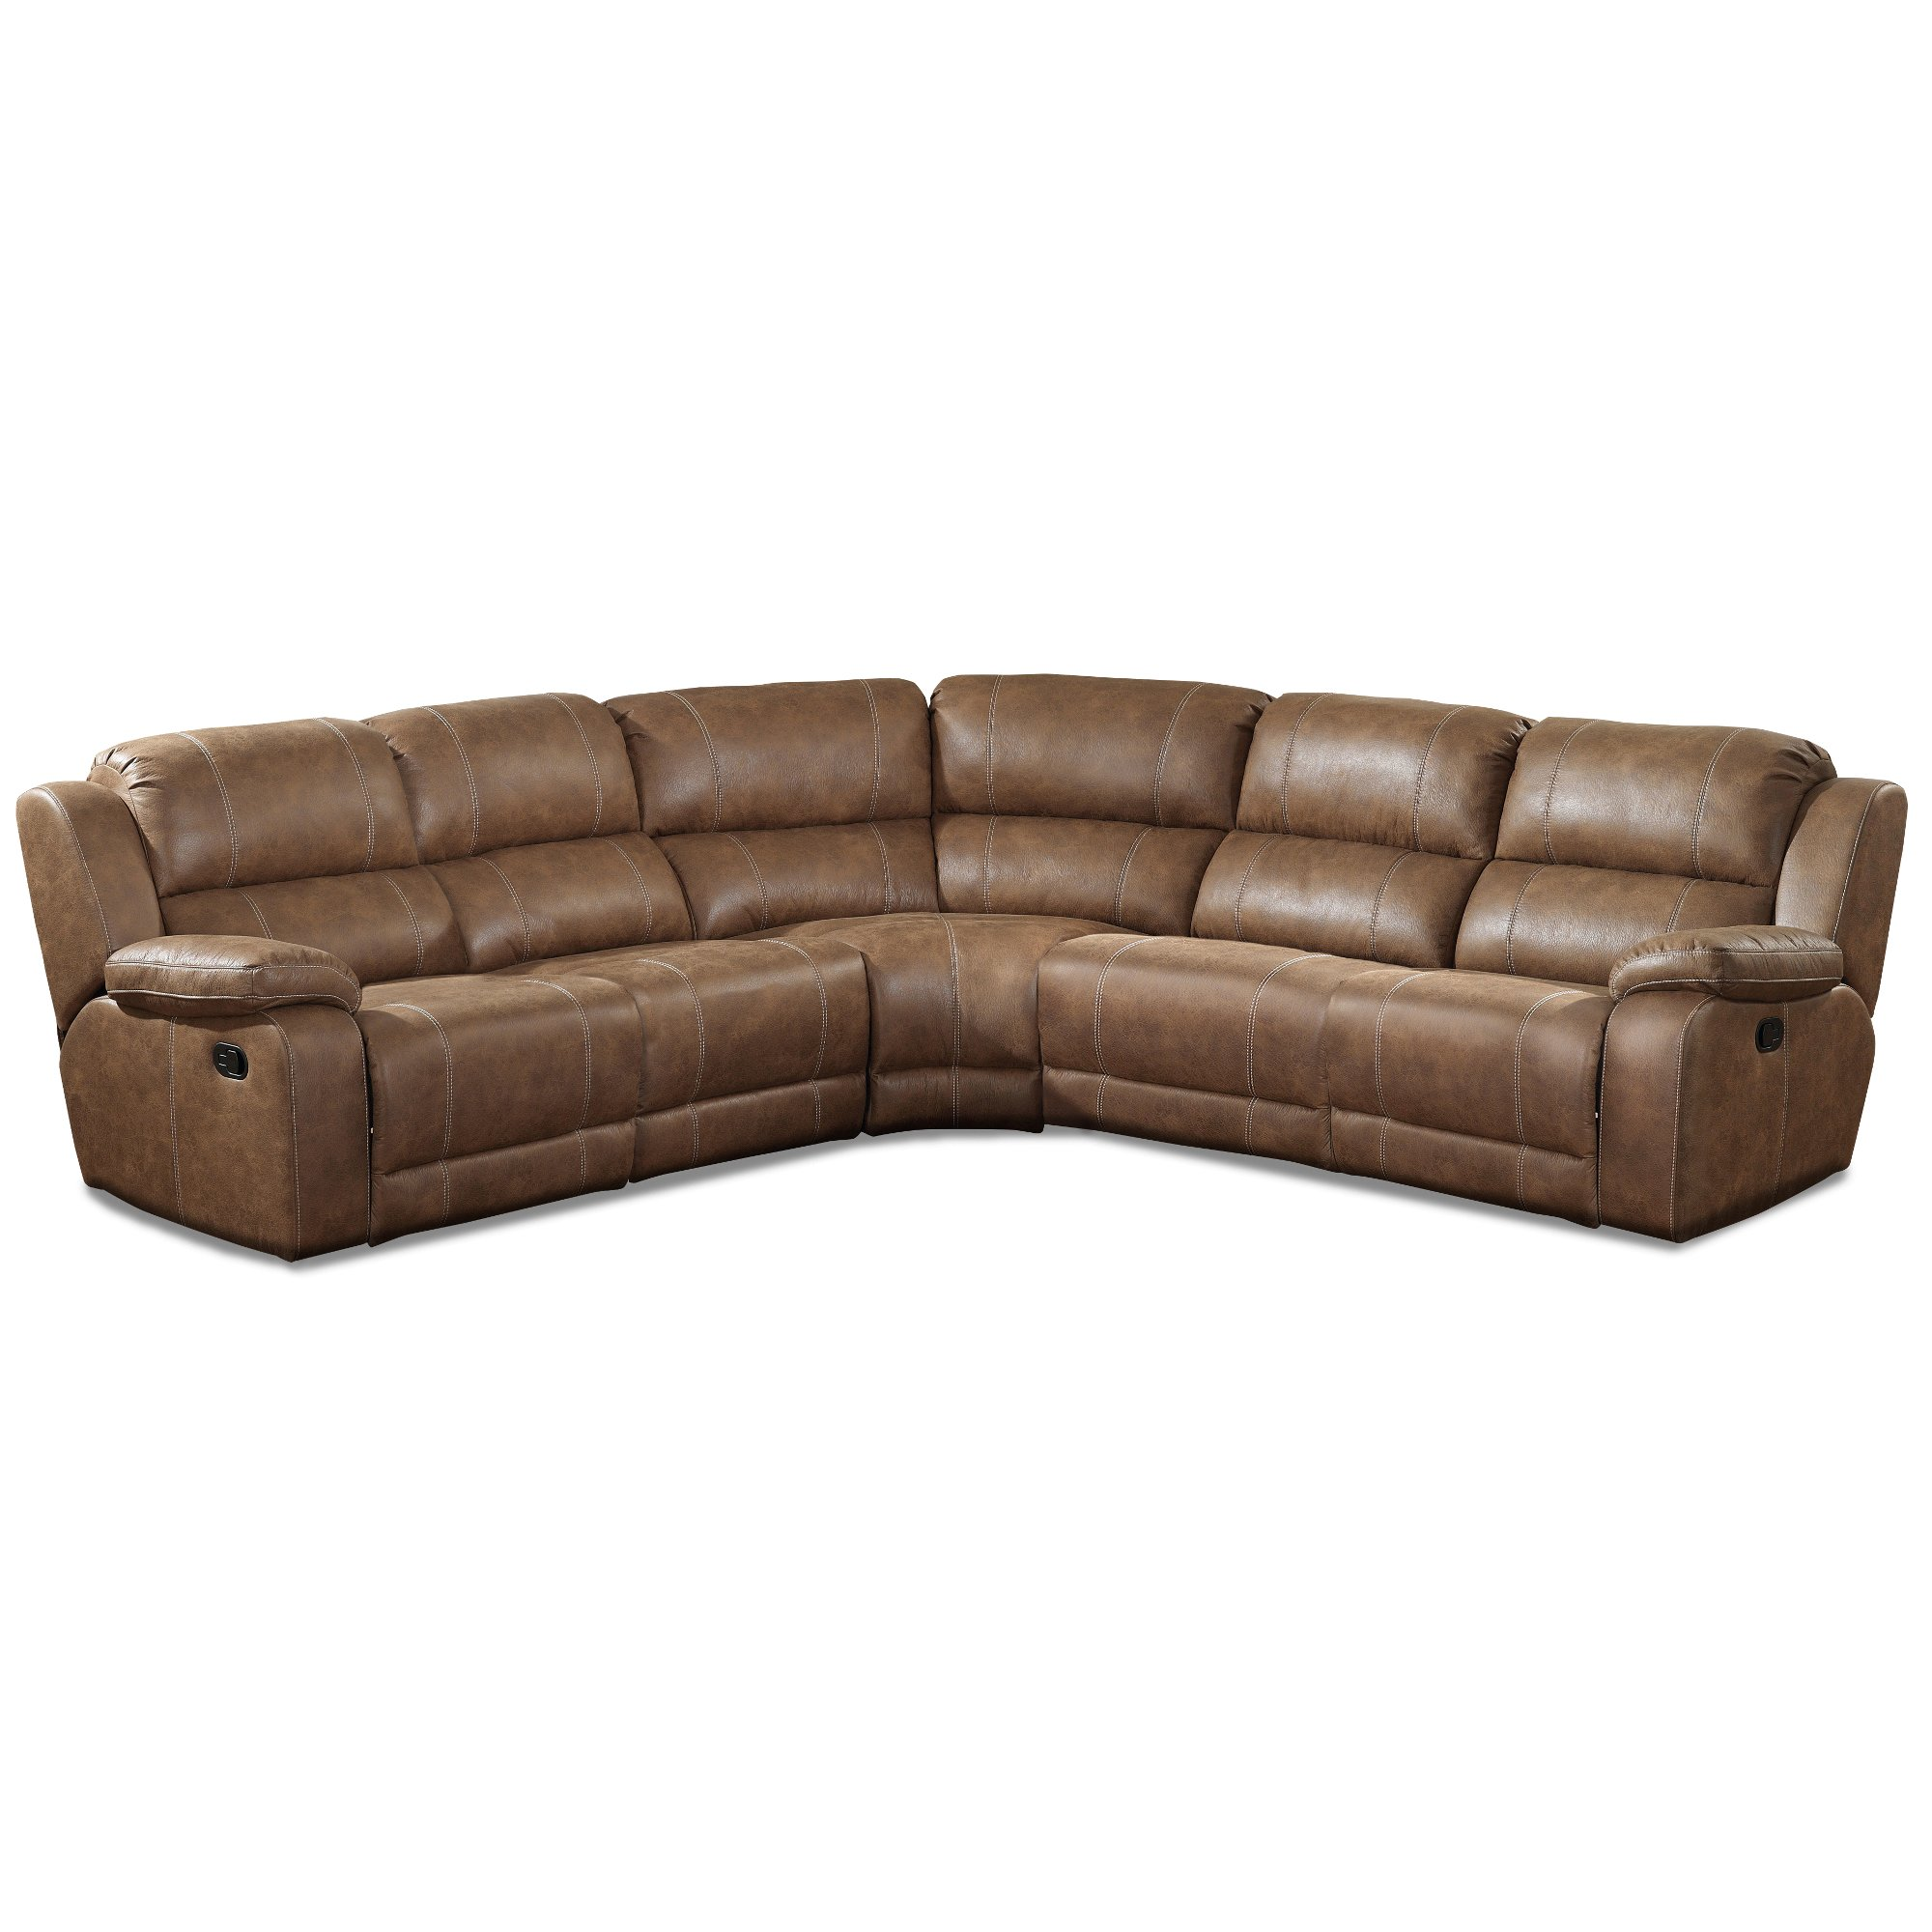 Badlands Saddle Brown 5 Piece Reclining Sectional Sofa   Charlotte